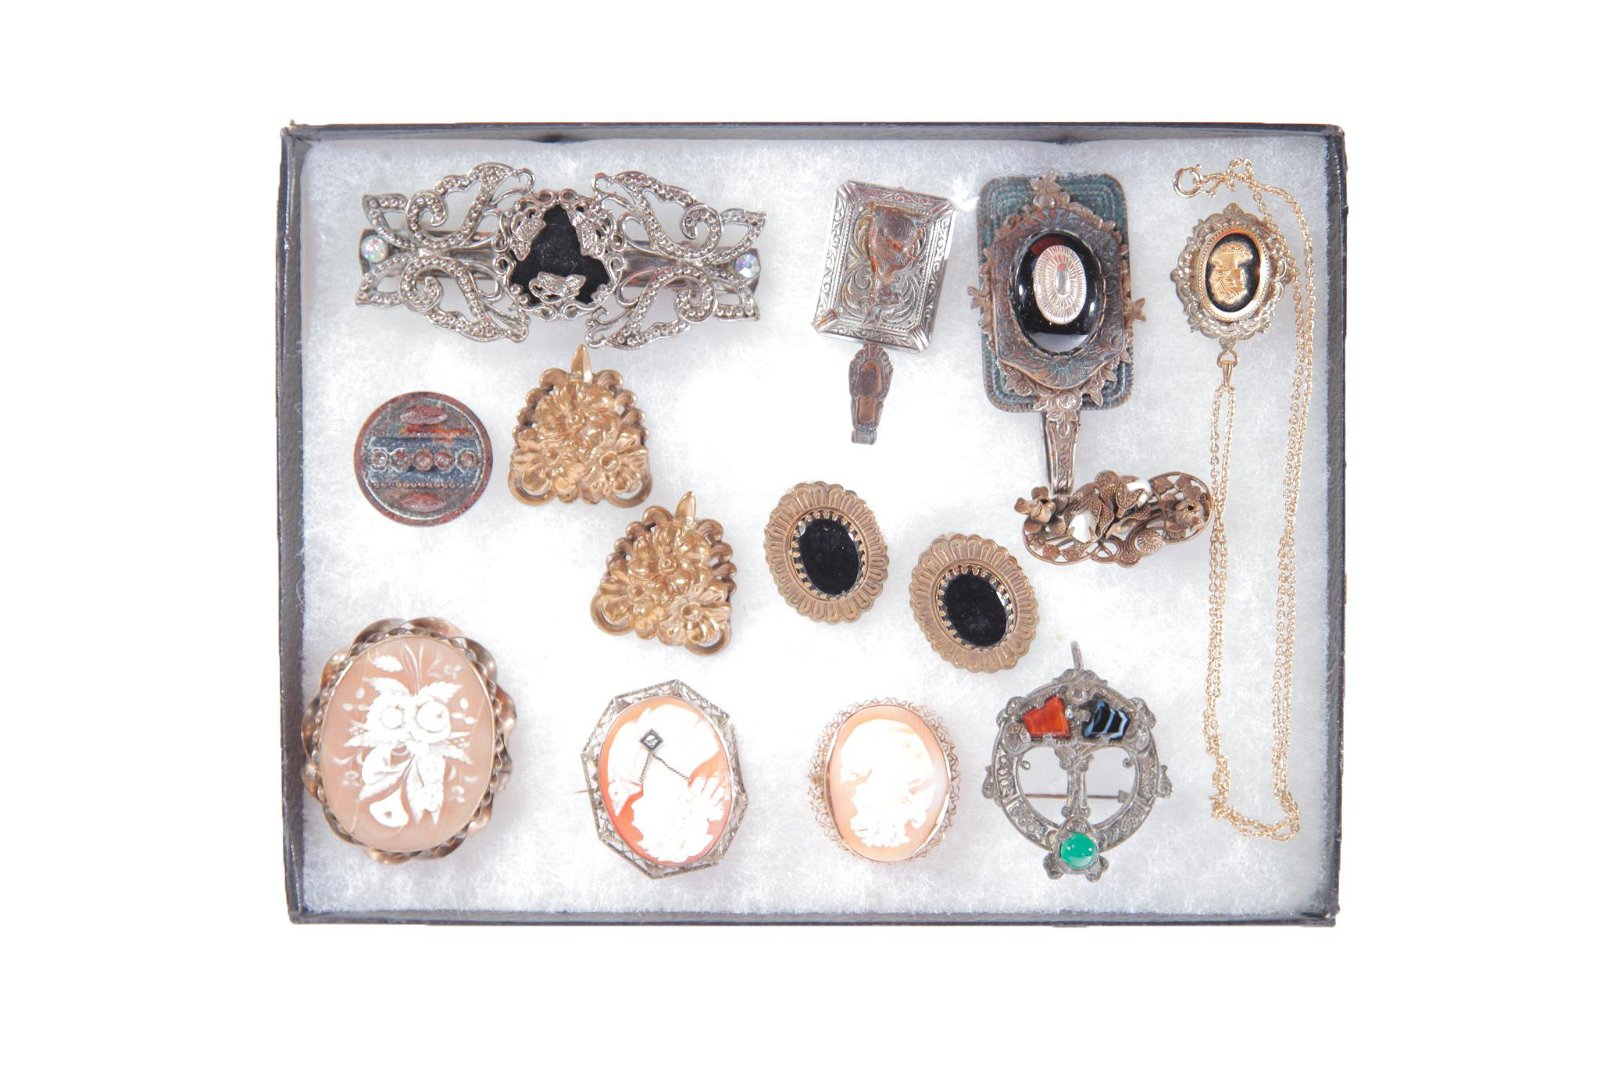 SMALL GROUP OF CAMEOS AND OTHER VINTAGE JEWELRY.